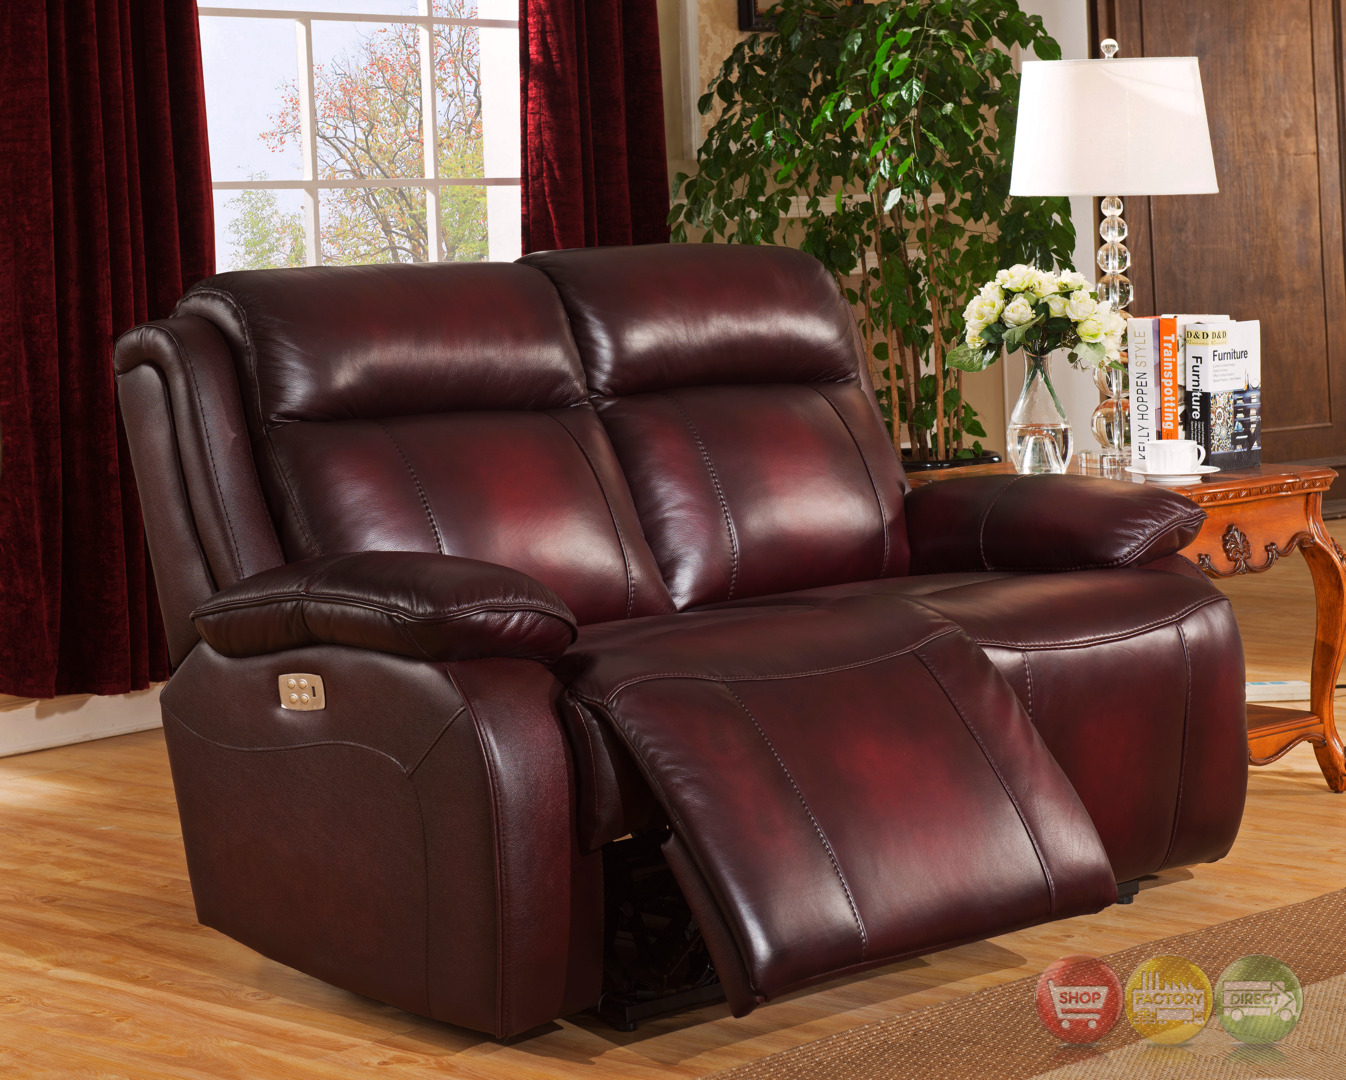 3pc recliner sofa set room and board cleaning faraday power recline in deep red real